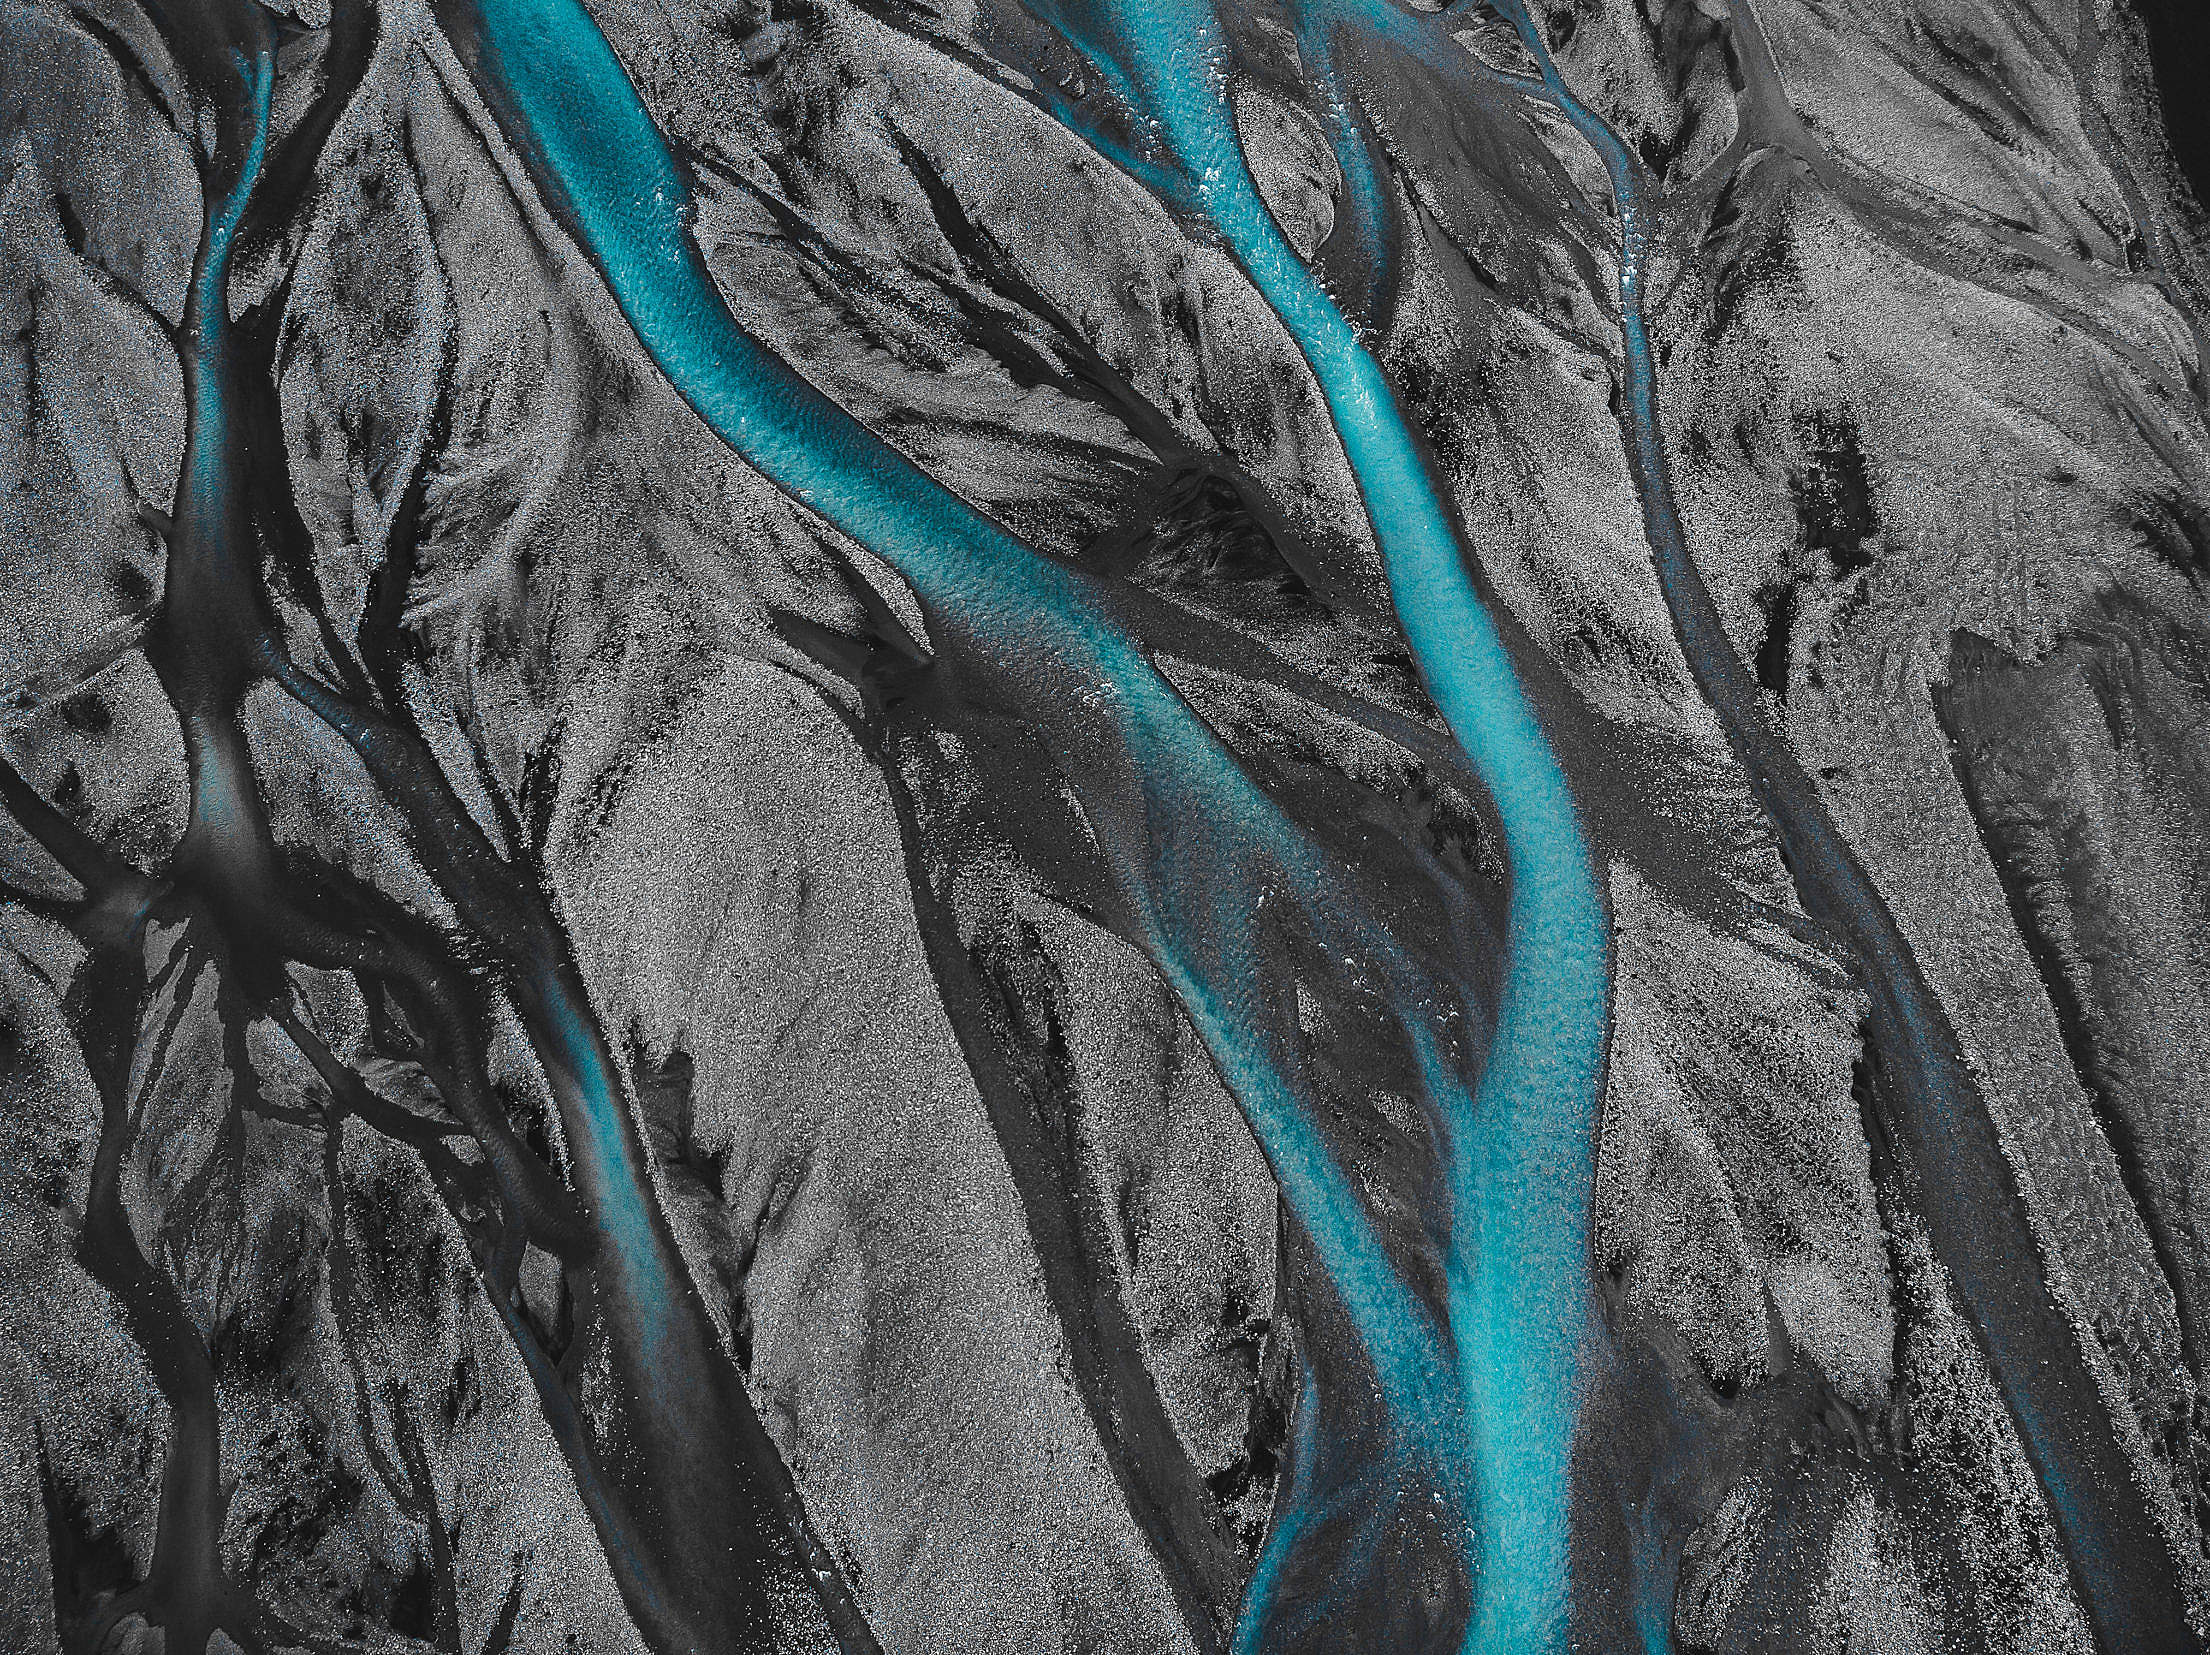 Texture of an Icelandic River in a Black Sand Free Stock Photo